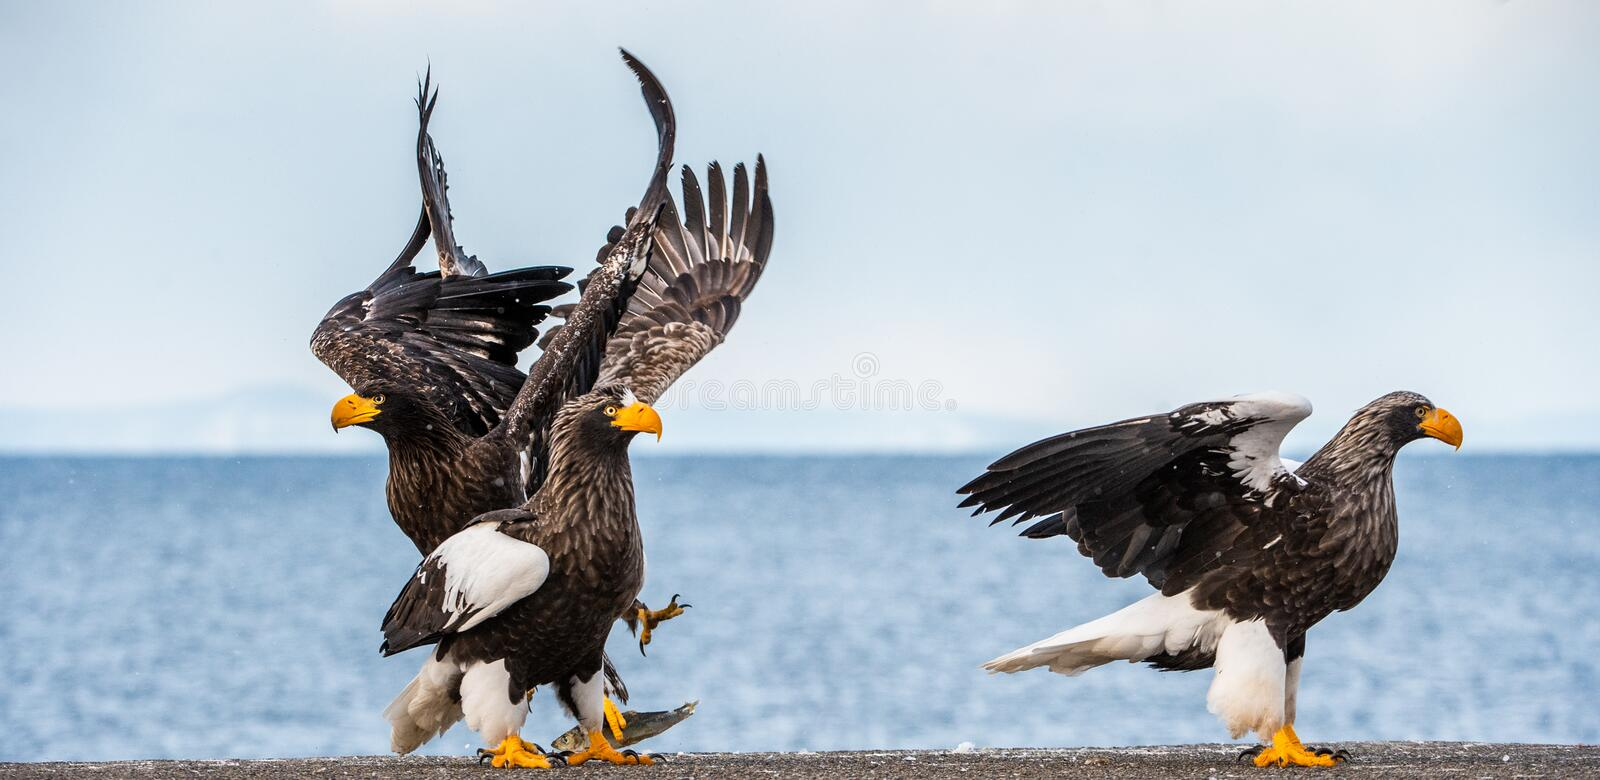 Adult Steller`s sea eagle landed.  Scientific name: Haliaeetus pelagicus. Blue sky and ocean background. royalty free stock images